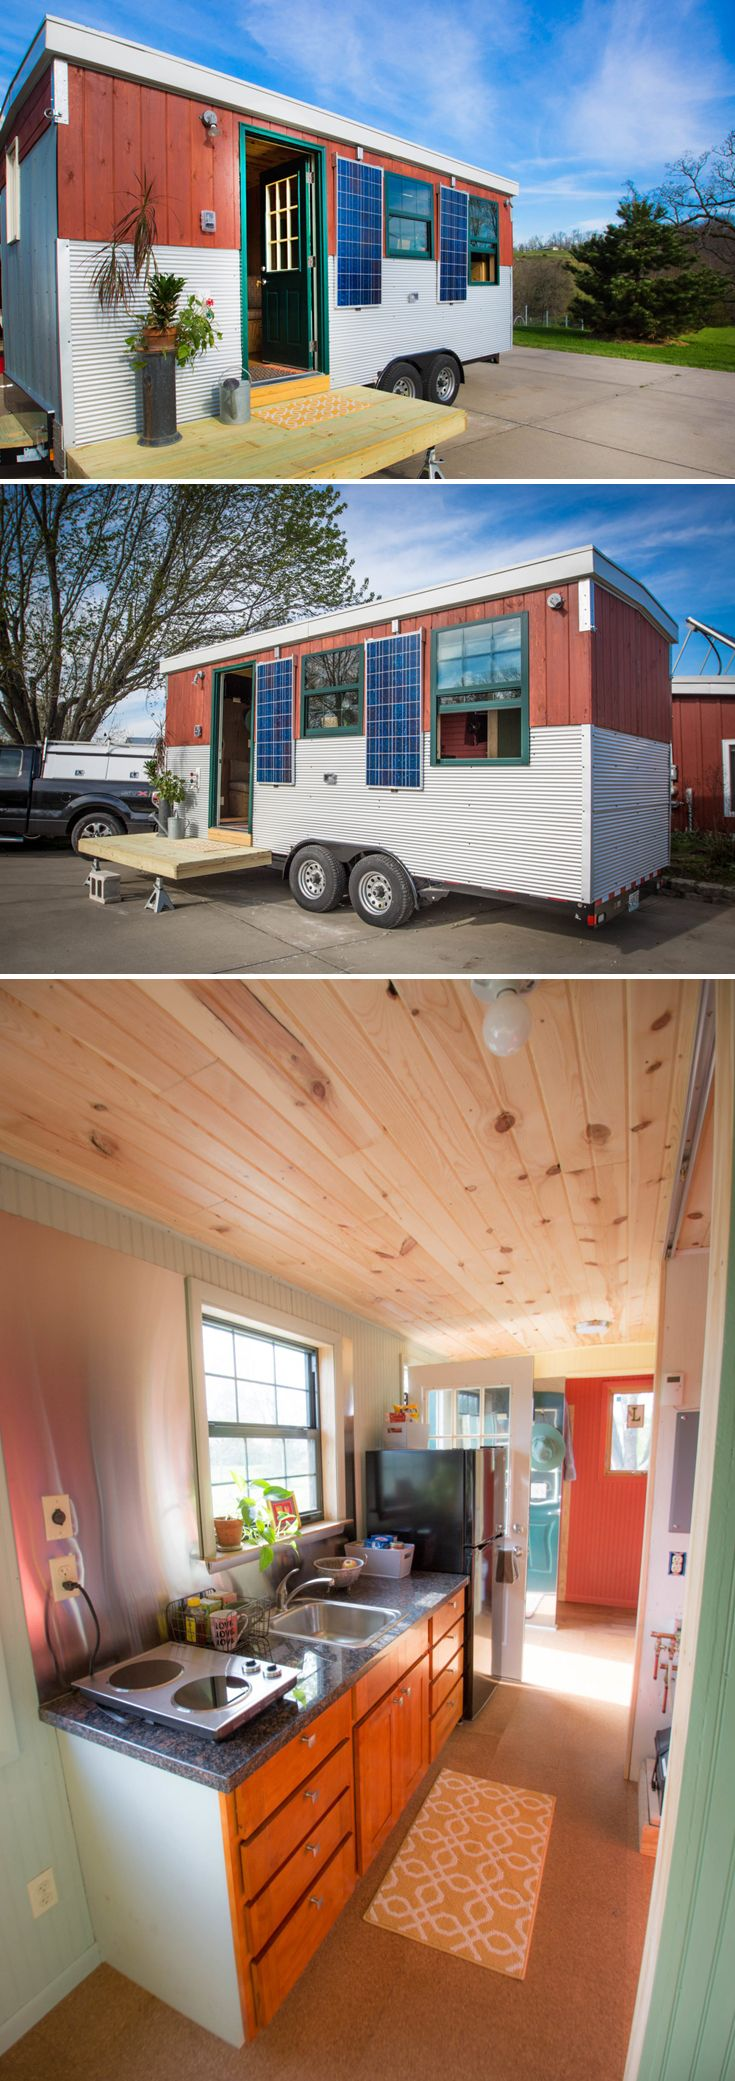 """Thermal solar and hydronics expert, Bob """"Hotrod"""" Rohr, built this colorful tiny house, Starlighter, with a solar panel system and radiant walls and floors."""